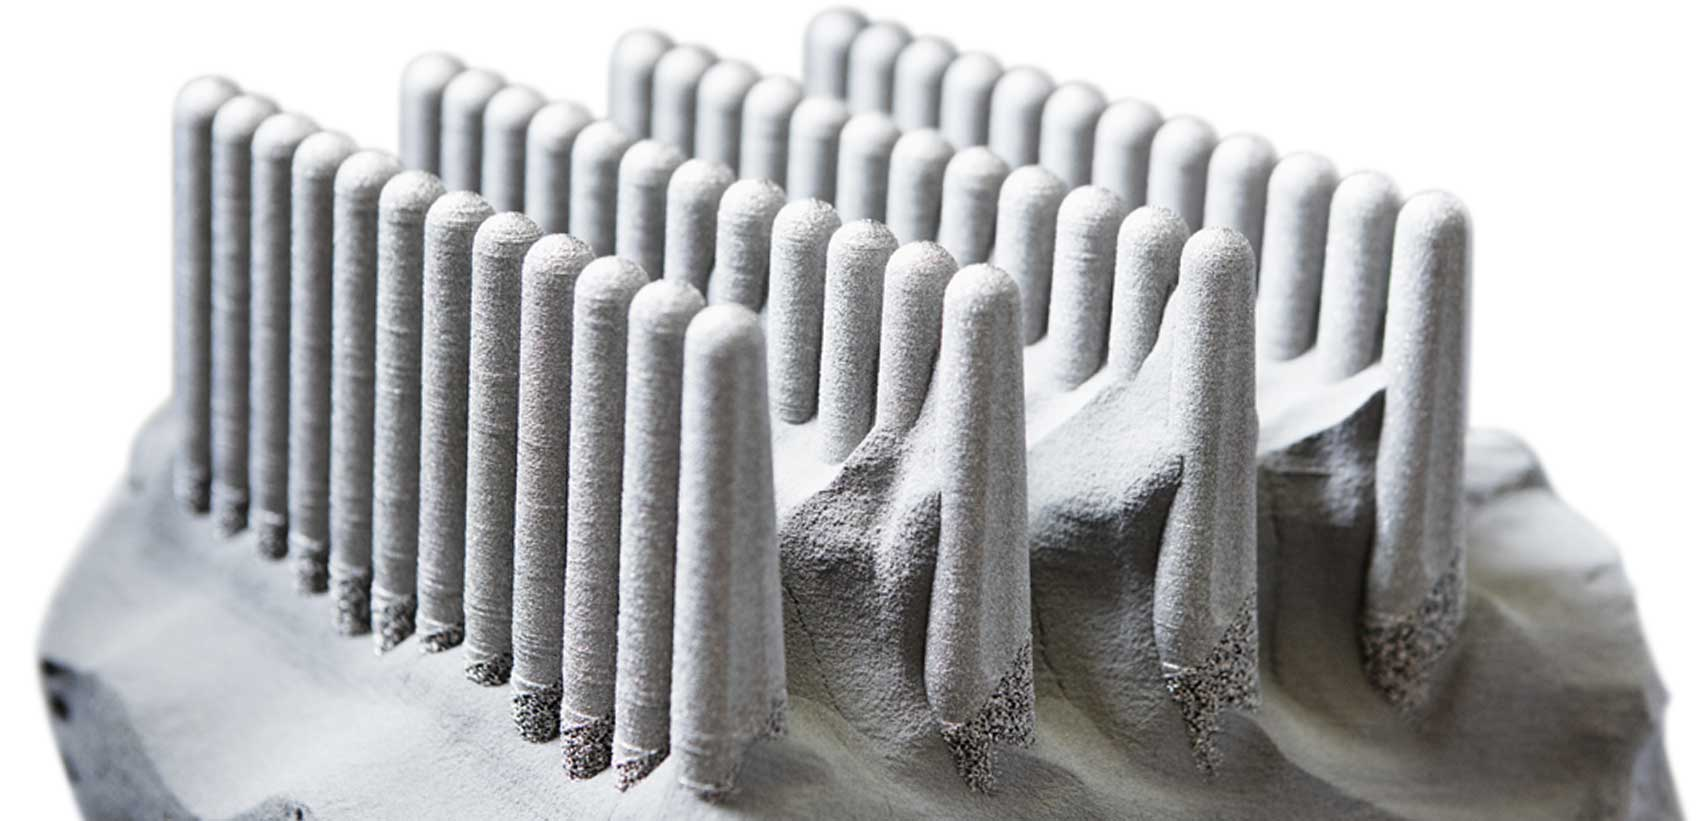 NIST addresses metal 3D printer challenges with digital thread strategy